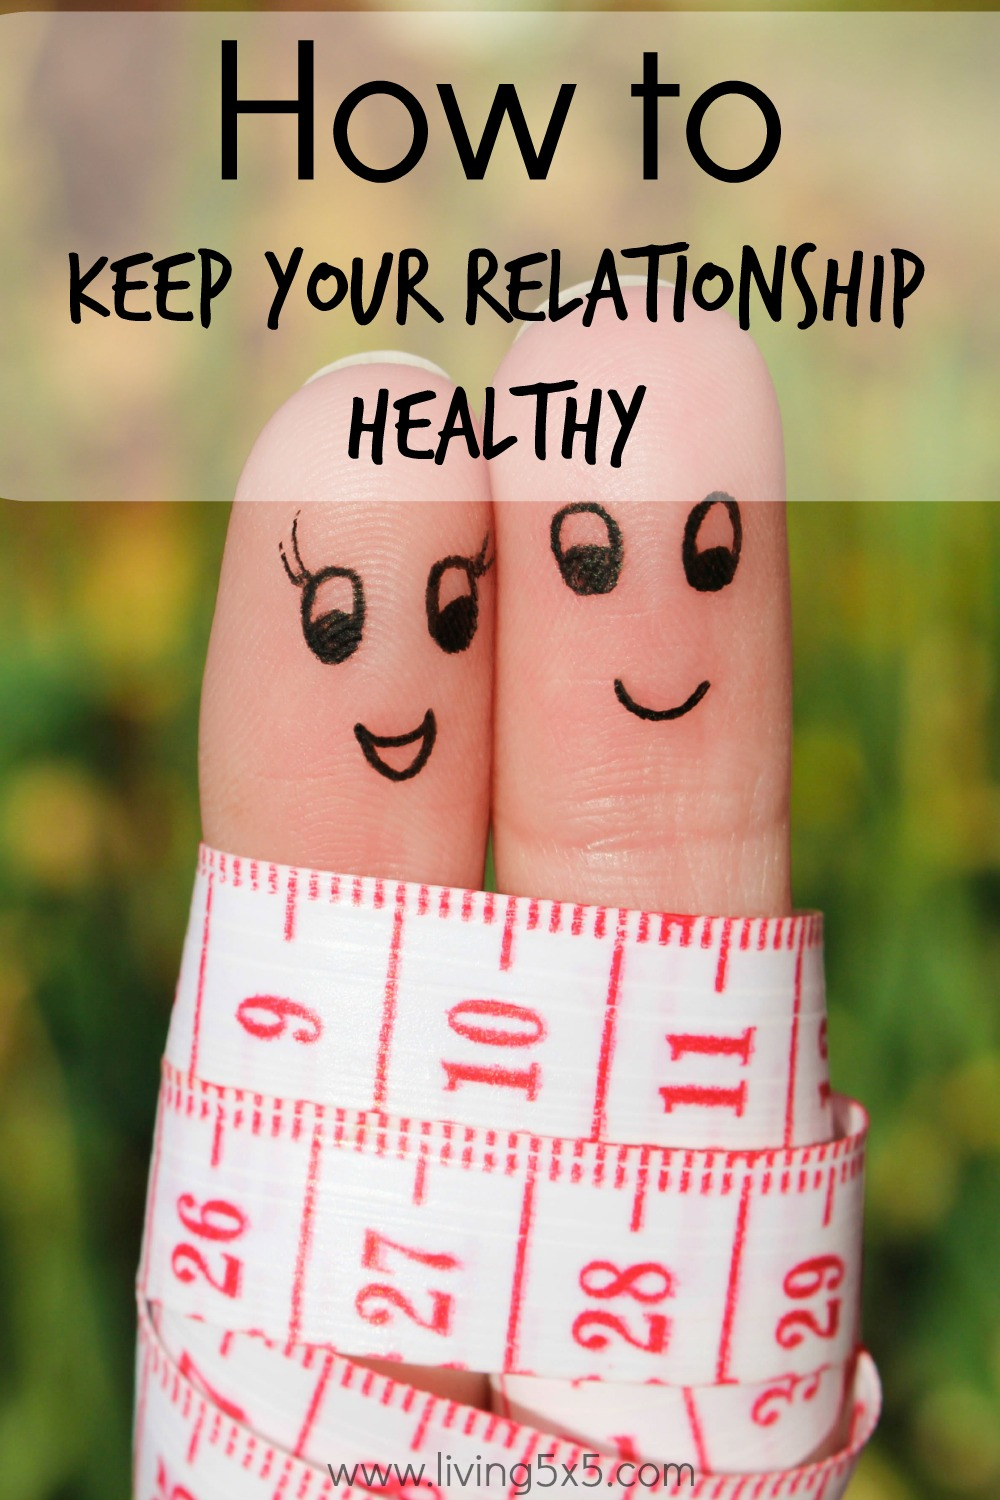 Learn How to Keep Your Relationship Healthy with a healthy mind and body.